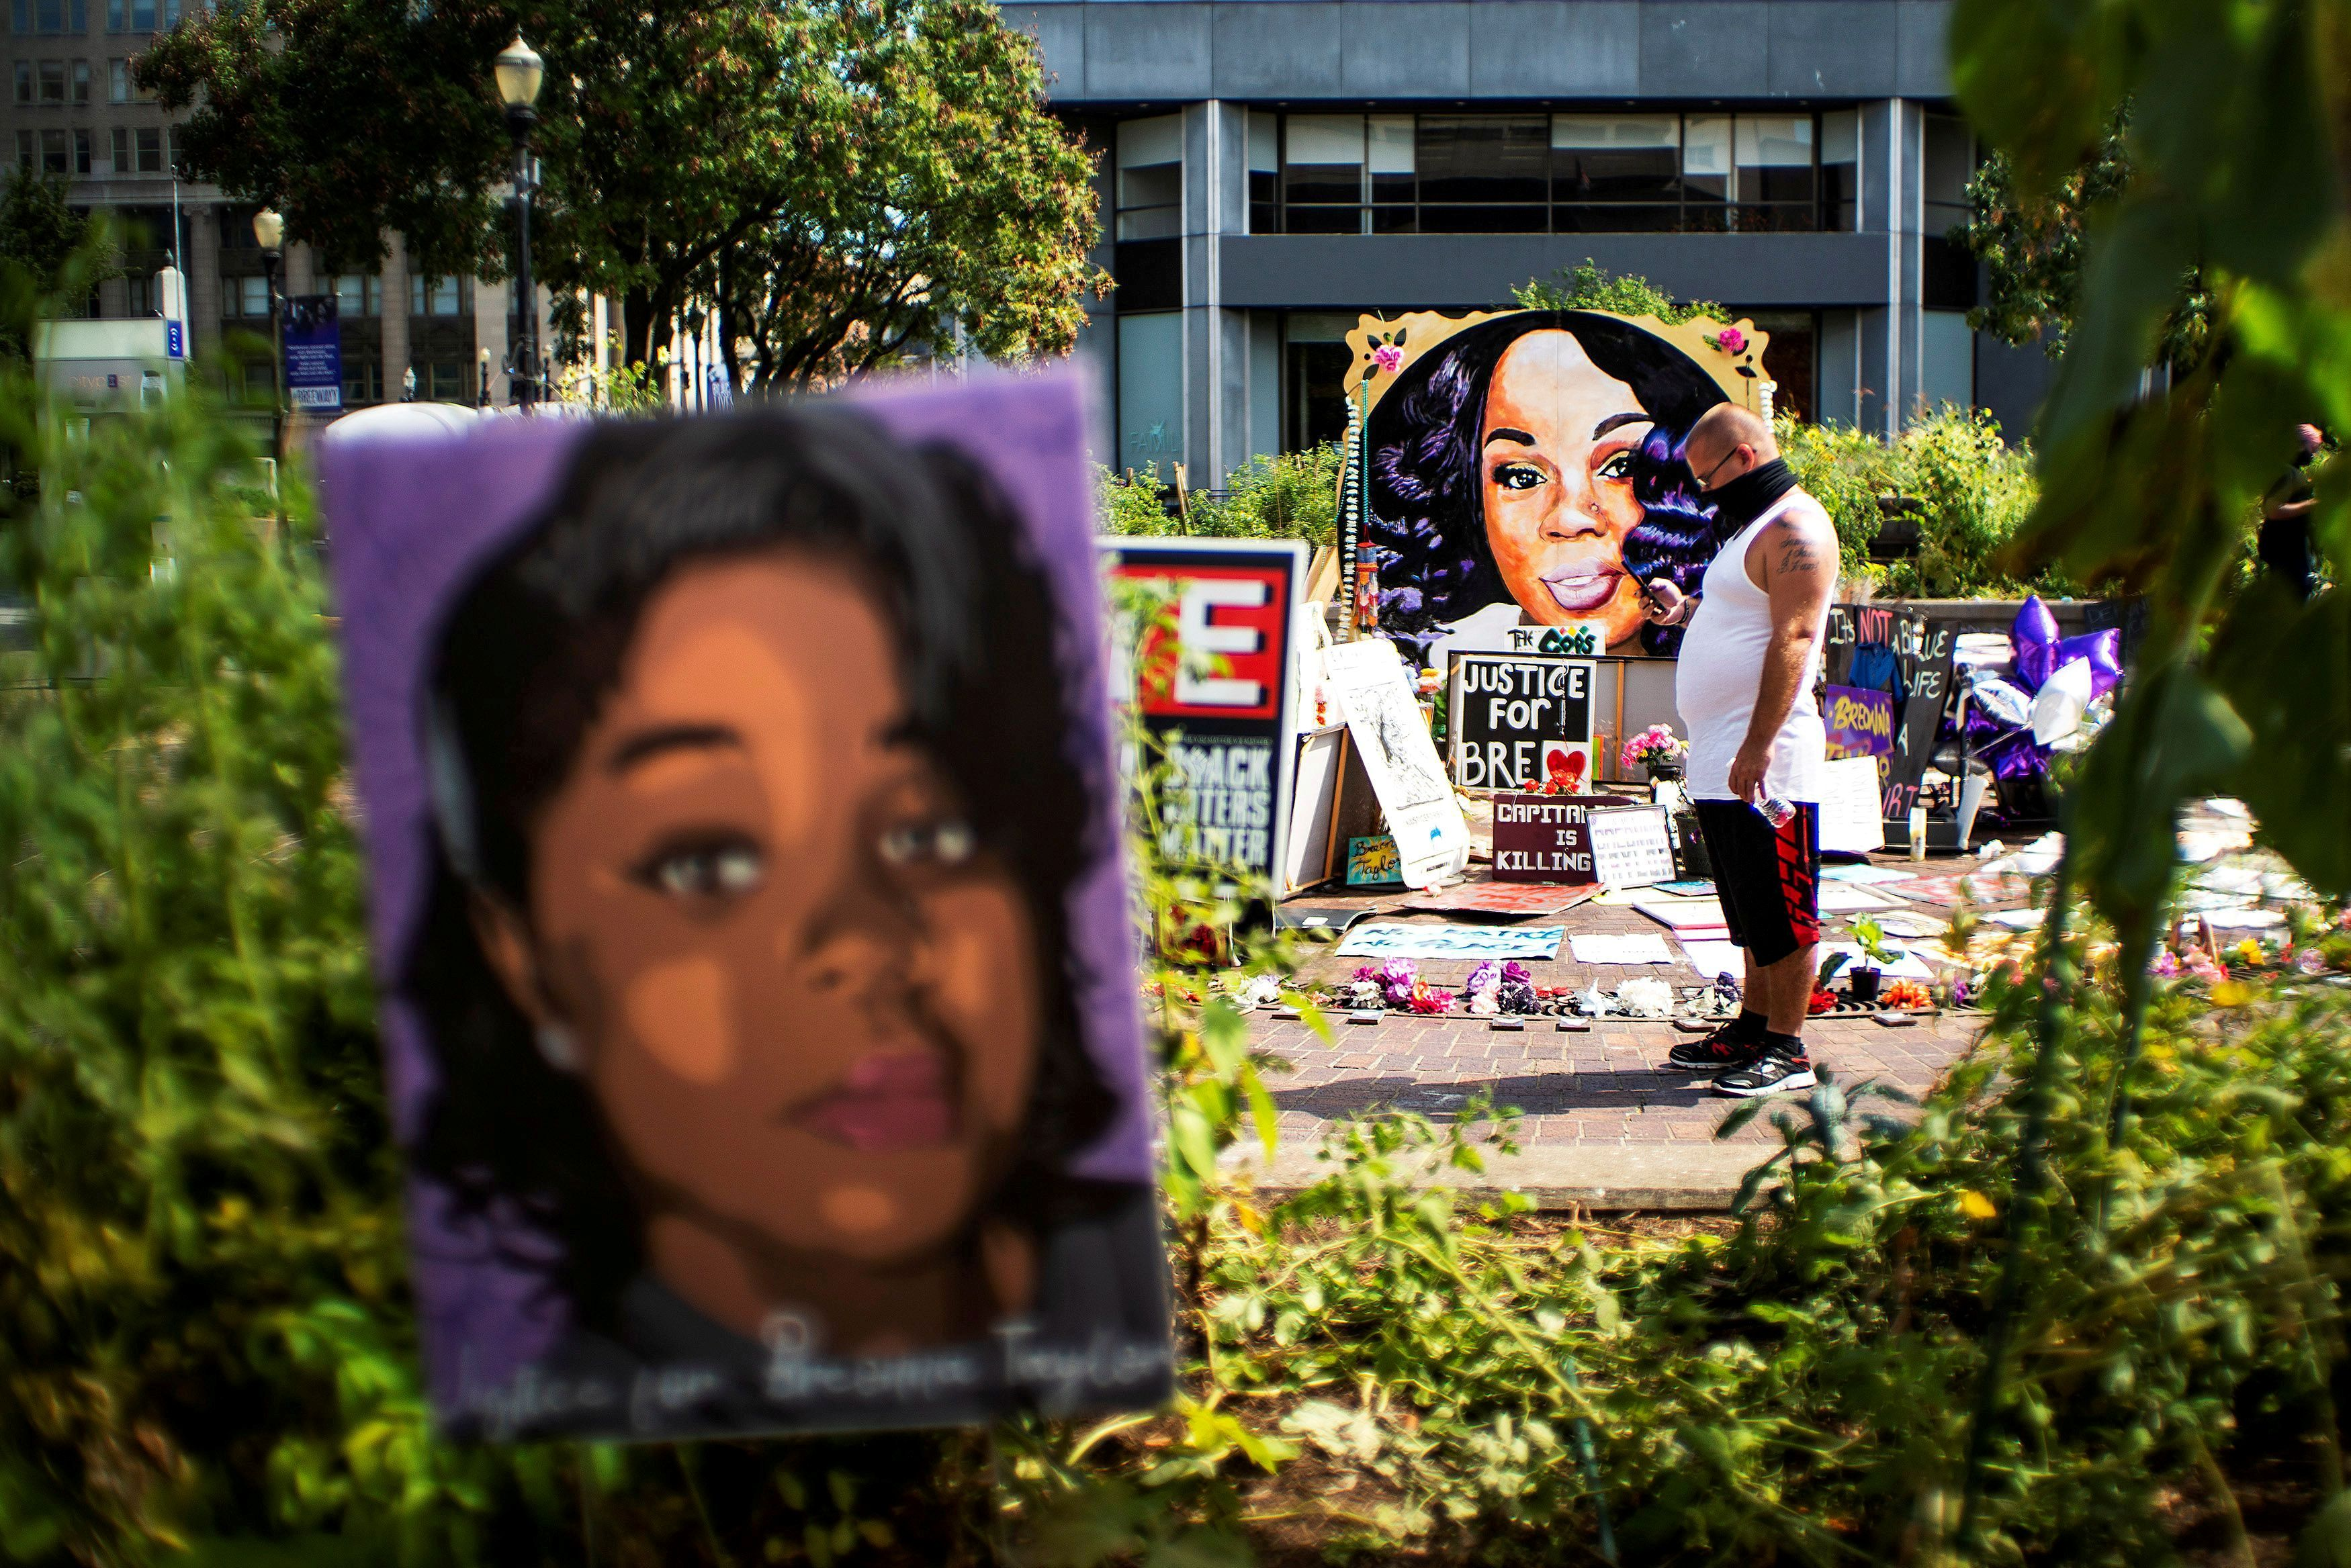 A man pauses at the memorial of Breonna Taylor before a march, after a grand jury decided not to bring homicide charges against police officers in the fatal shooting that killed her [File: Eduardo Munoz/Reuters]